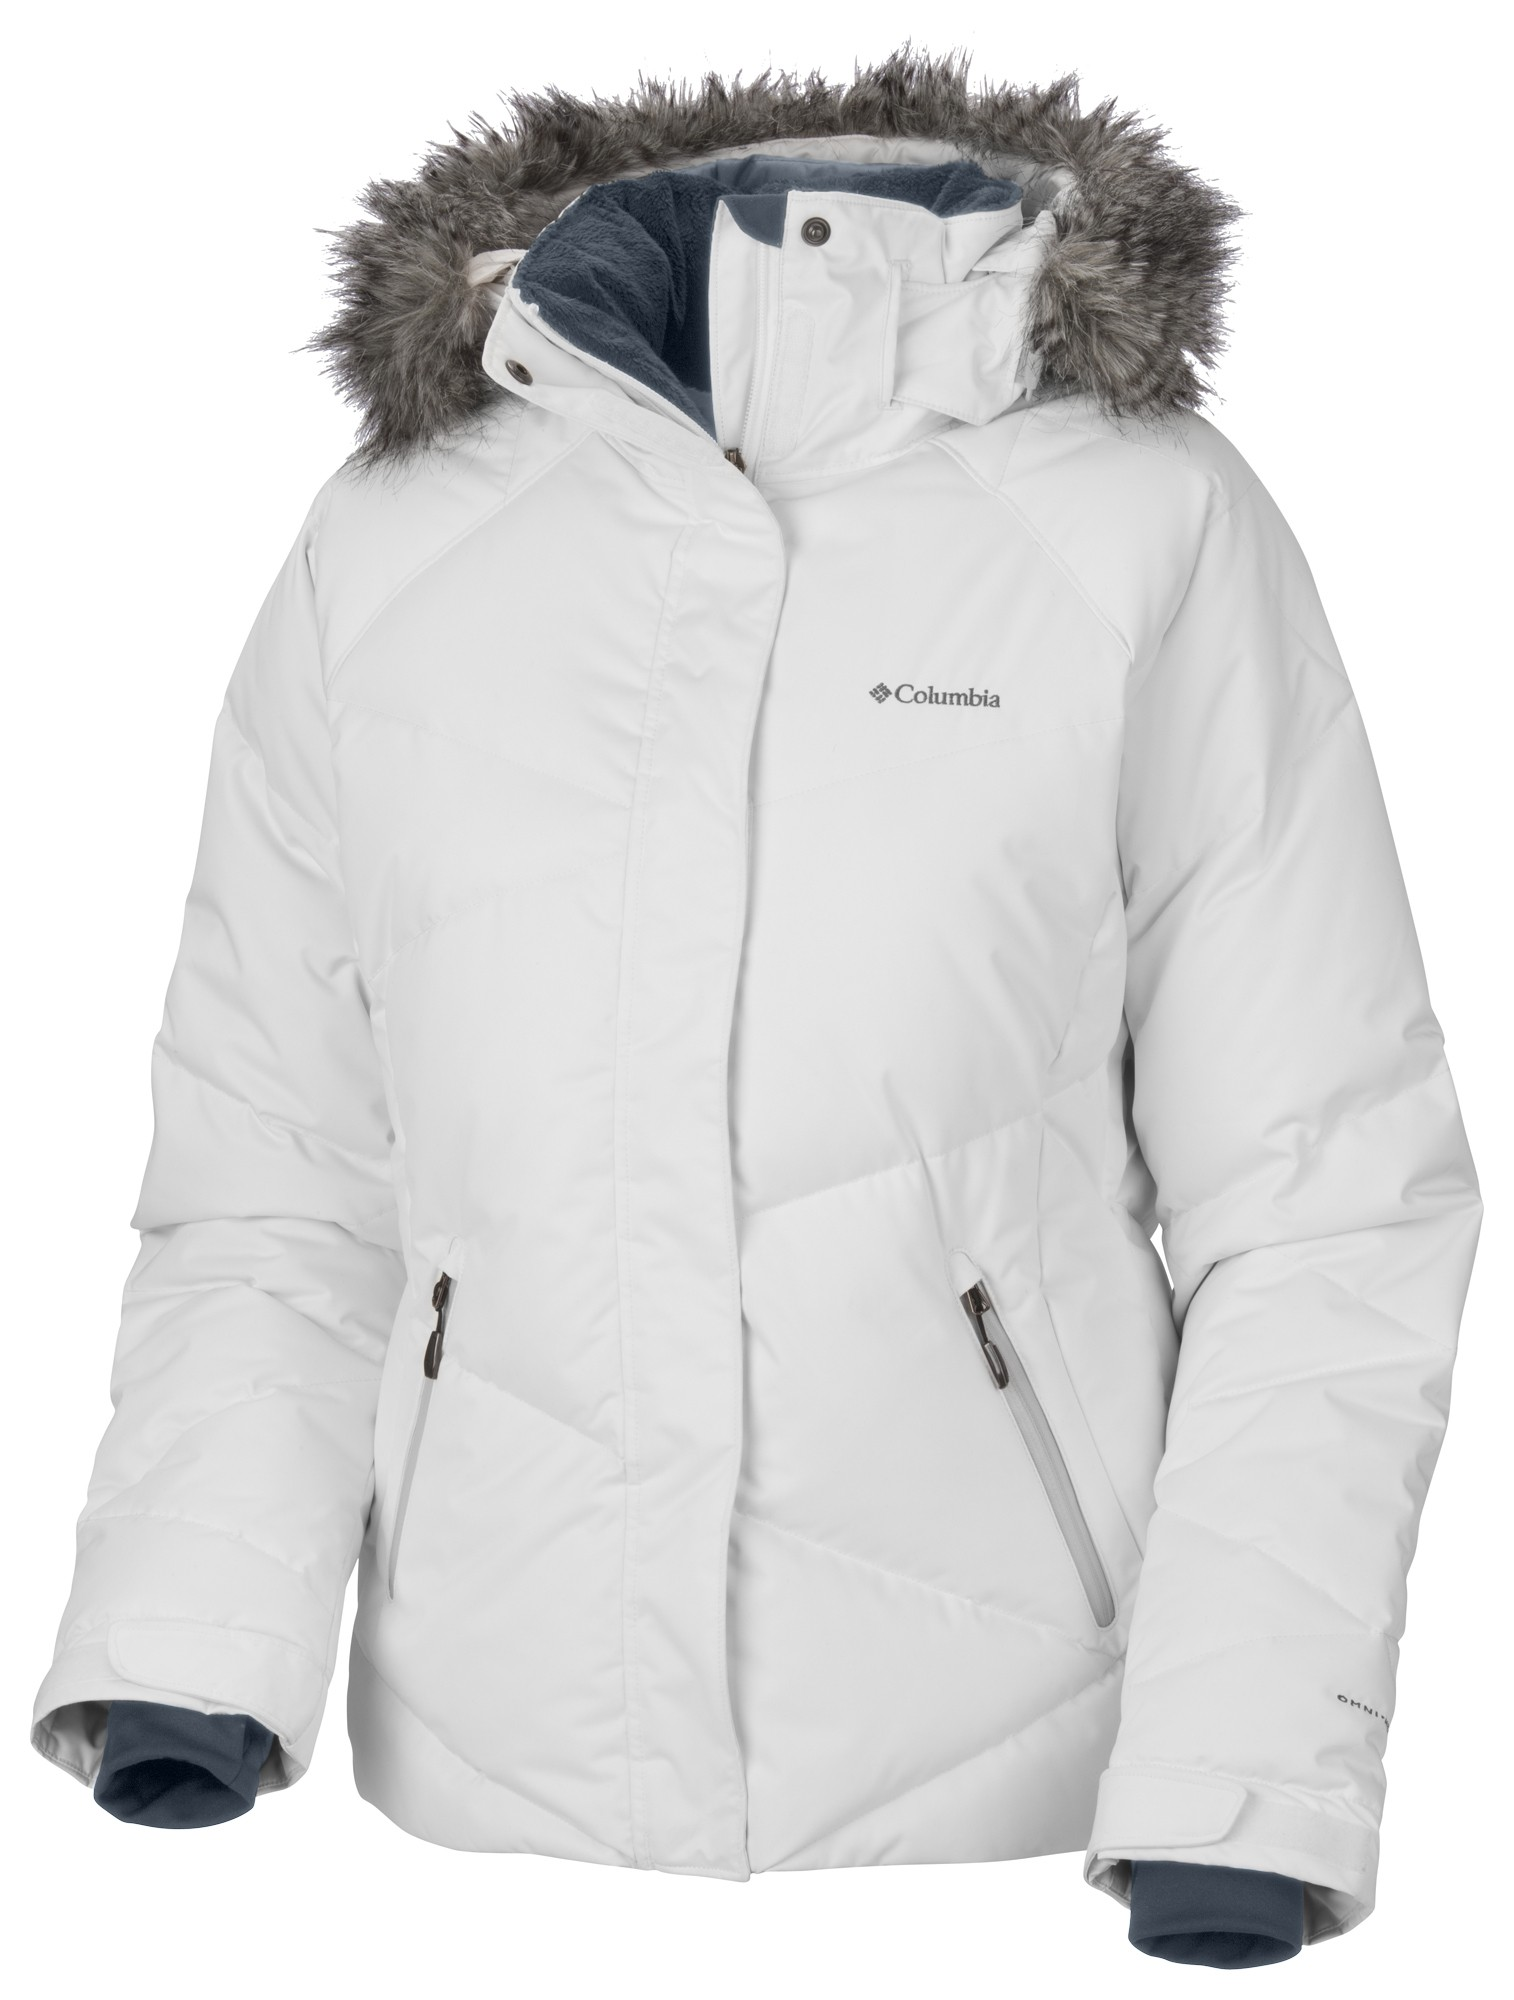 Columbia Lay D Down Womens Jacket in White Satin £199.00 52ee5ca77a